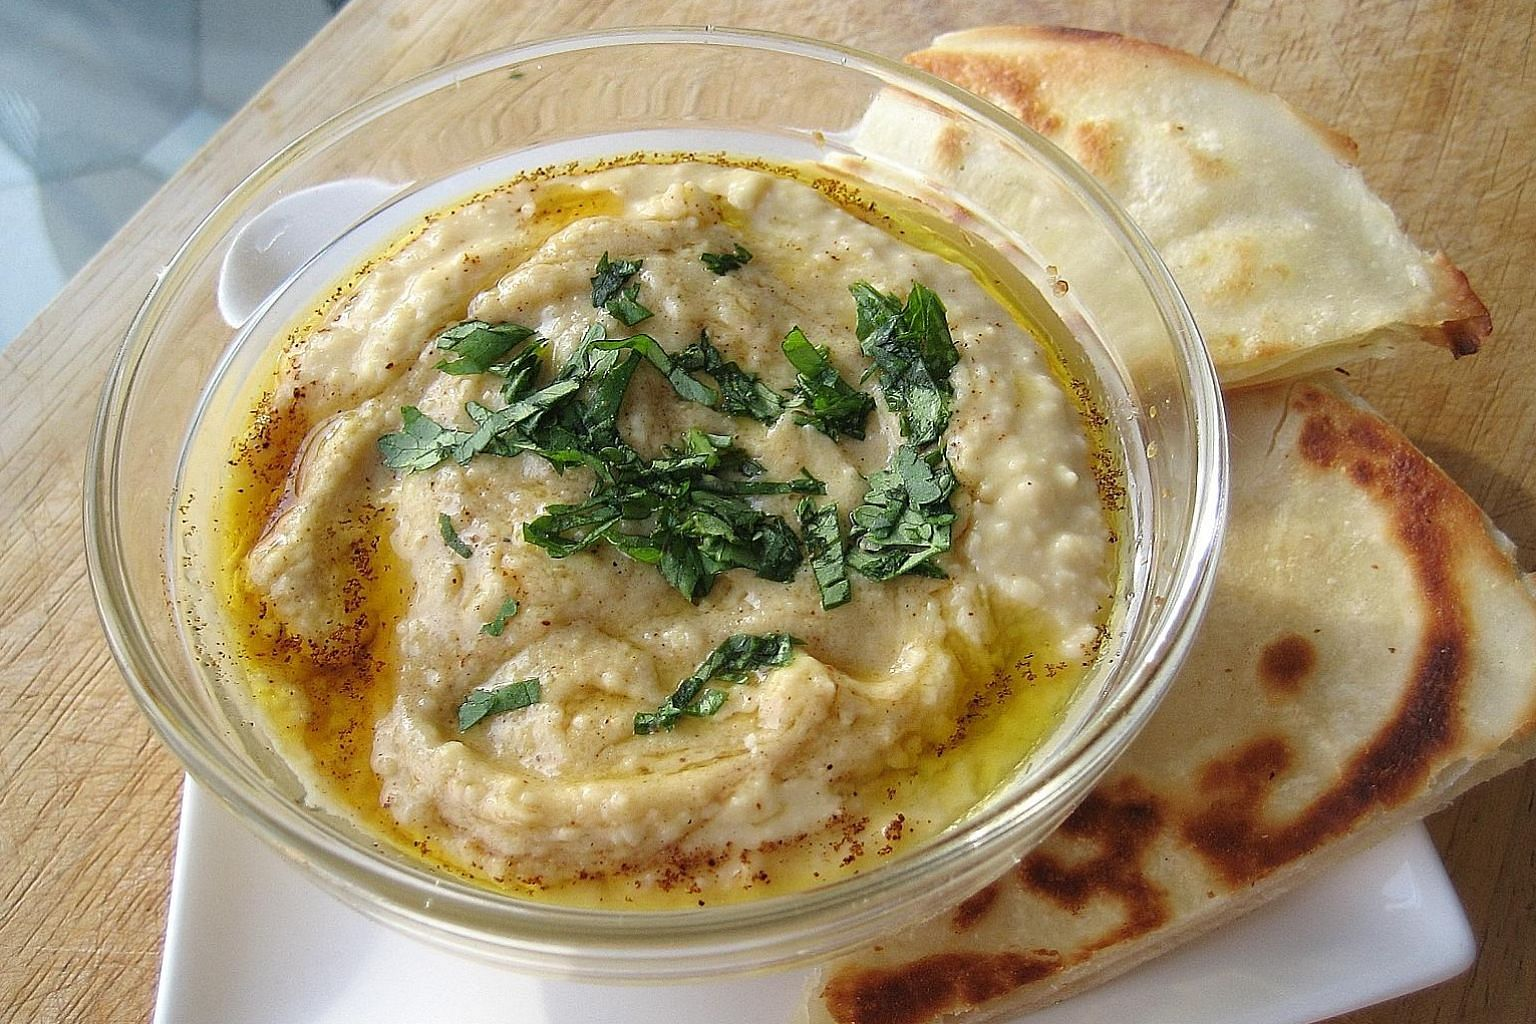 Find out why food such as hummus is good for you at ST Food.